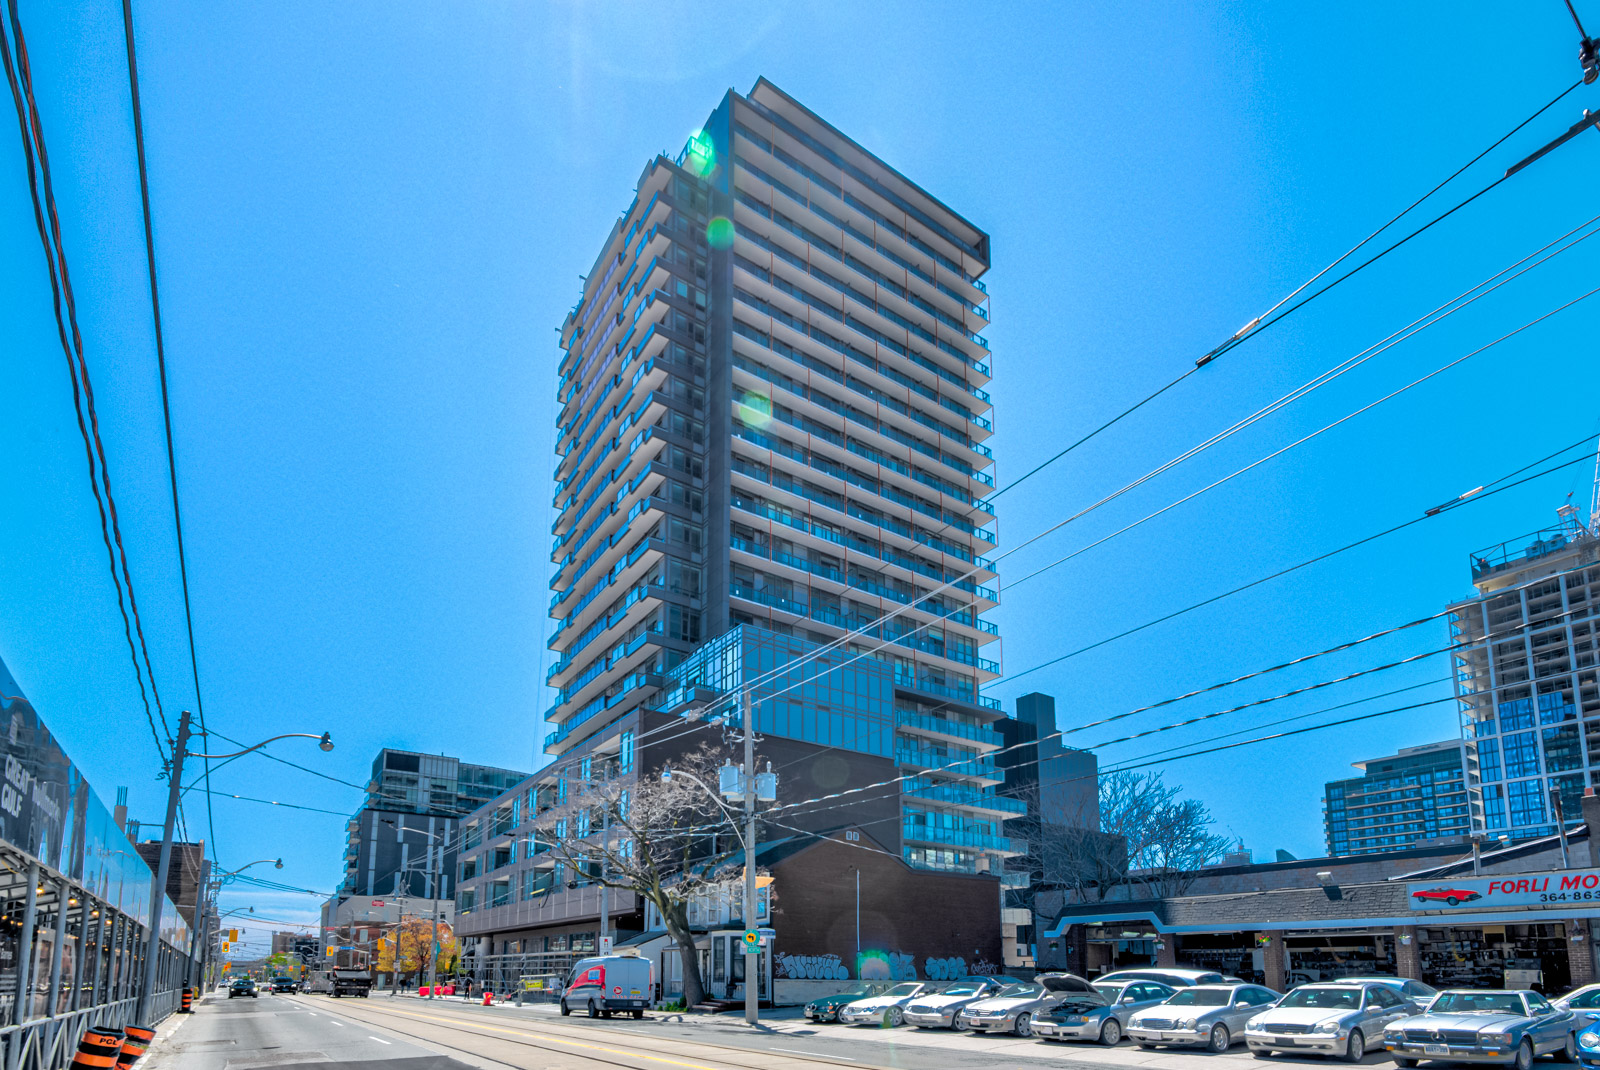 Across-the-street view of East United Condos, a mid-rise condo.